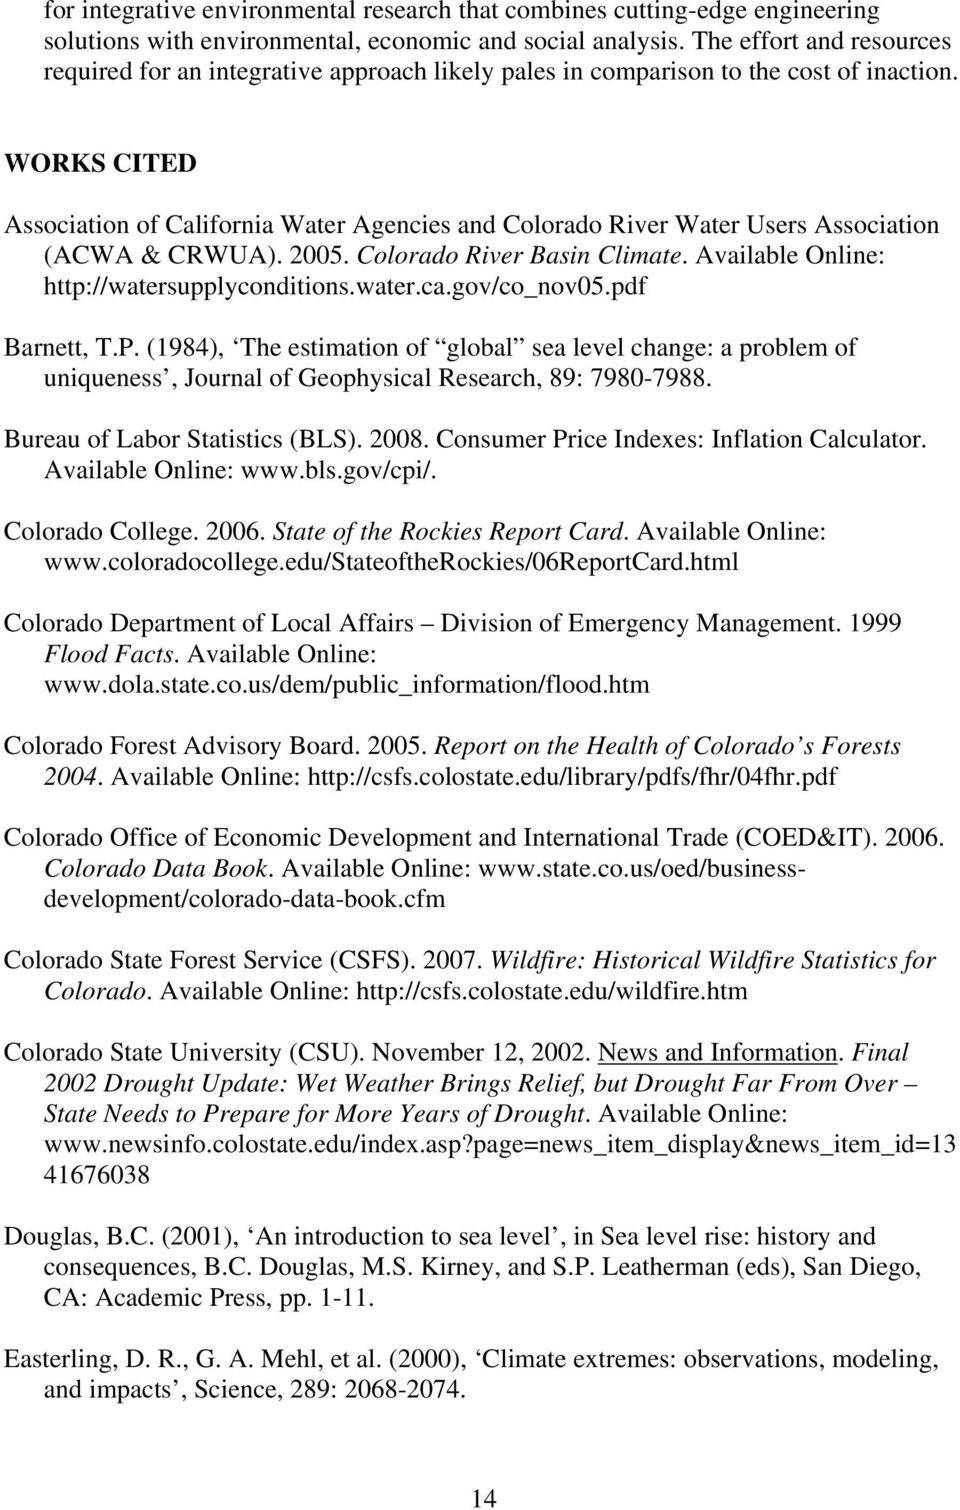 WORKS CITED Association of California Water Agencies and Colorado River Water Users Association (ACWA & CRWUA). 2005. Colorado River Basin Climate. Available Online: http://watersupplyconditions.